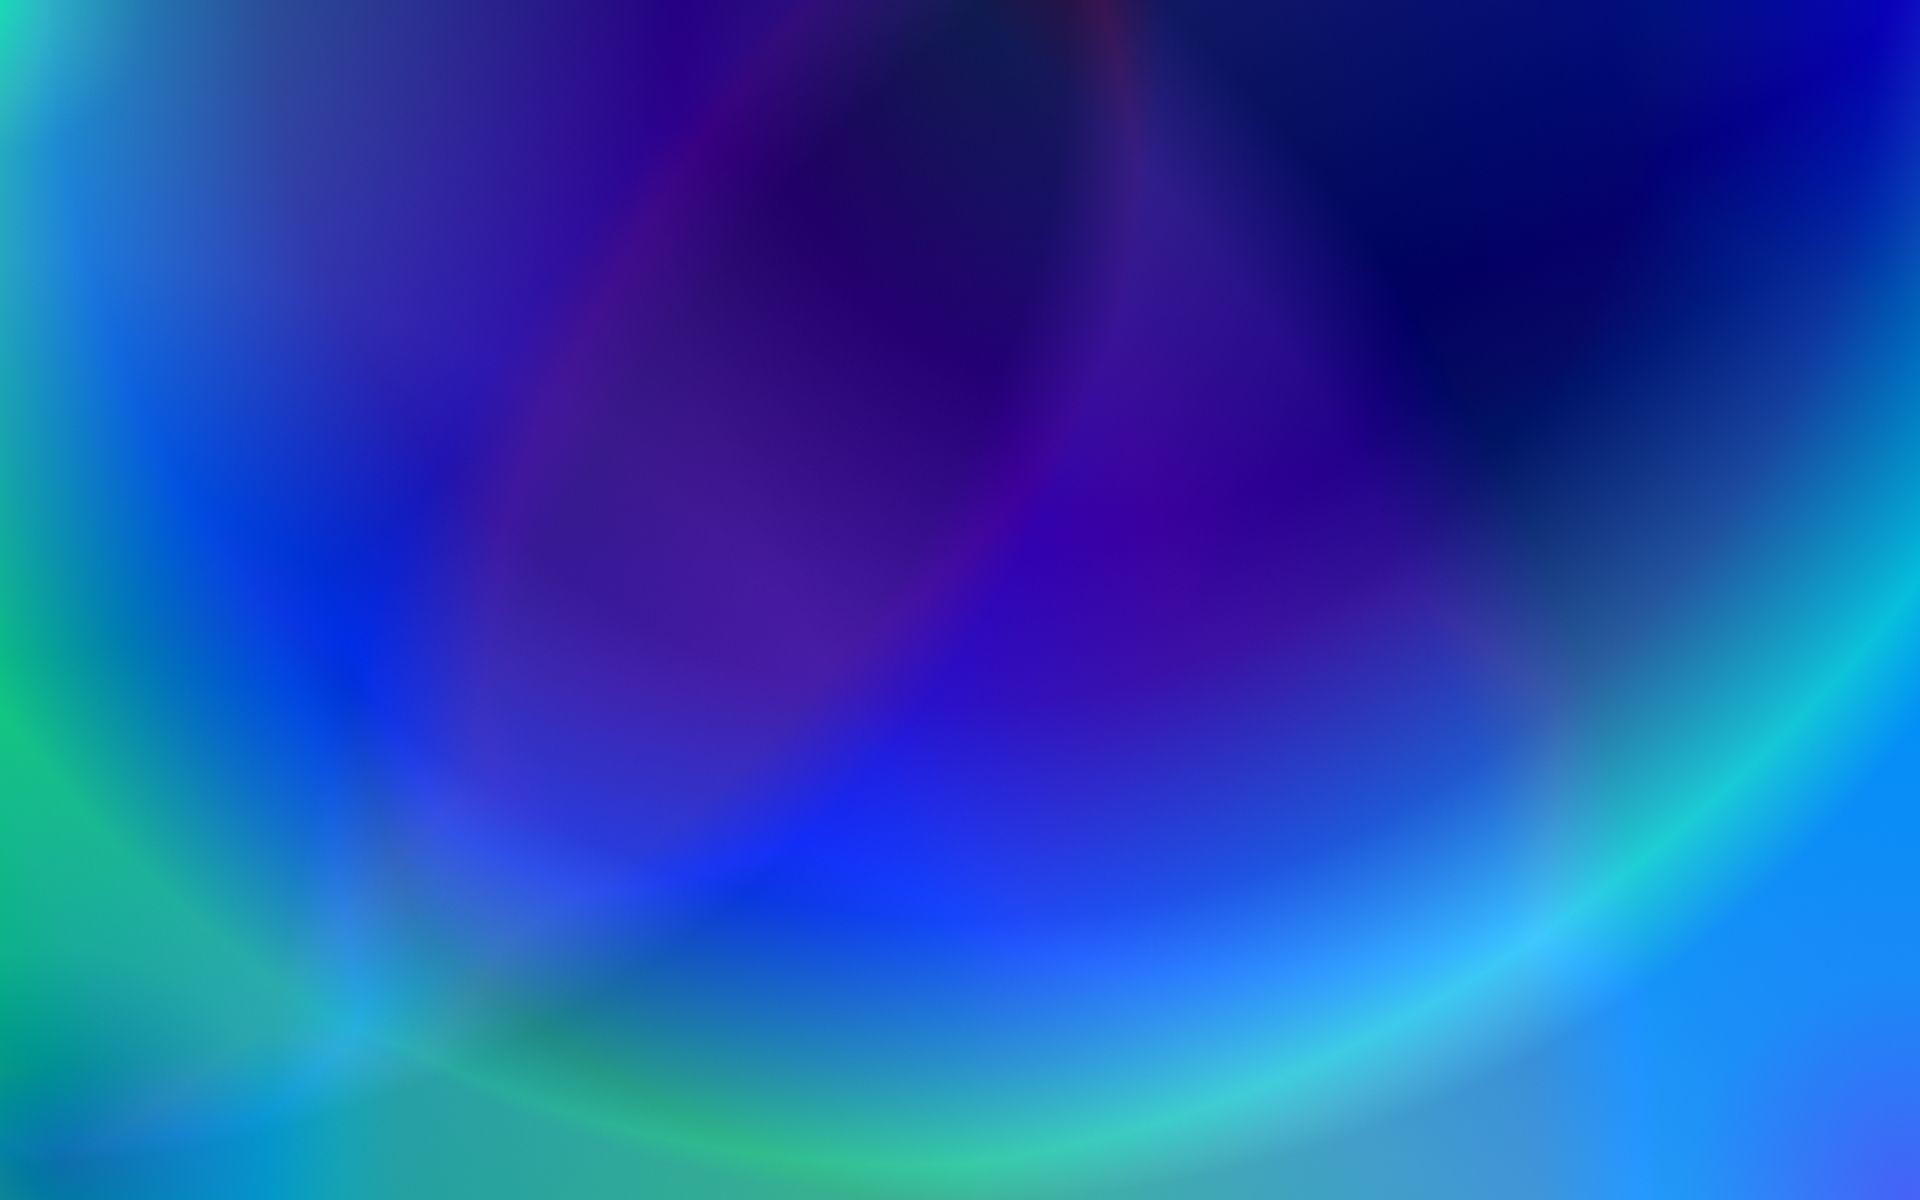 Neon Wallpaper – Abstract Blue Background 1920X1200.Jpg Wallpapers .